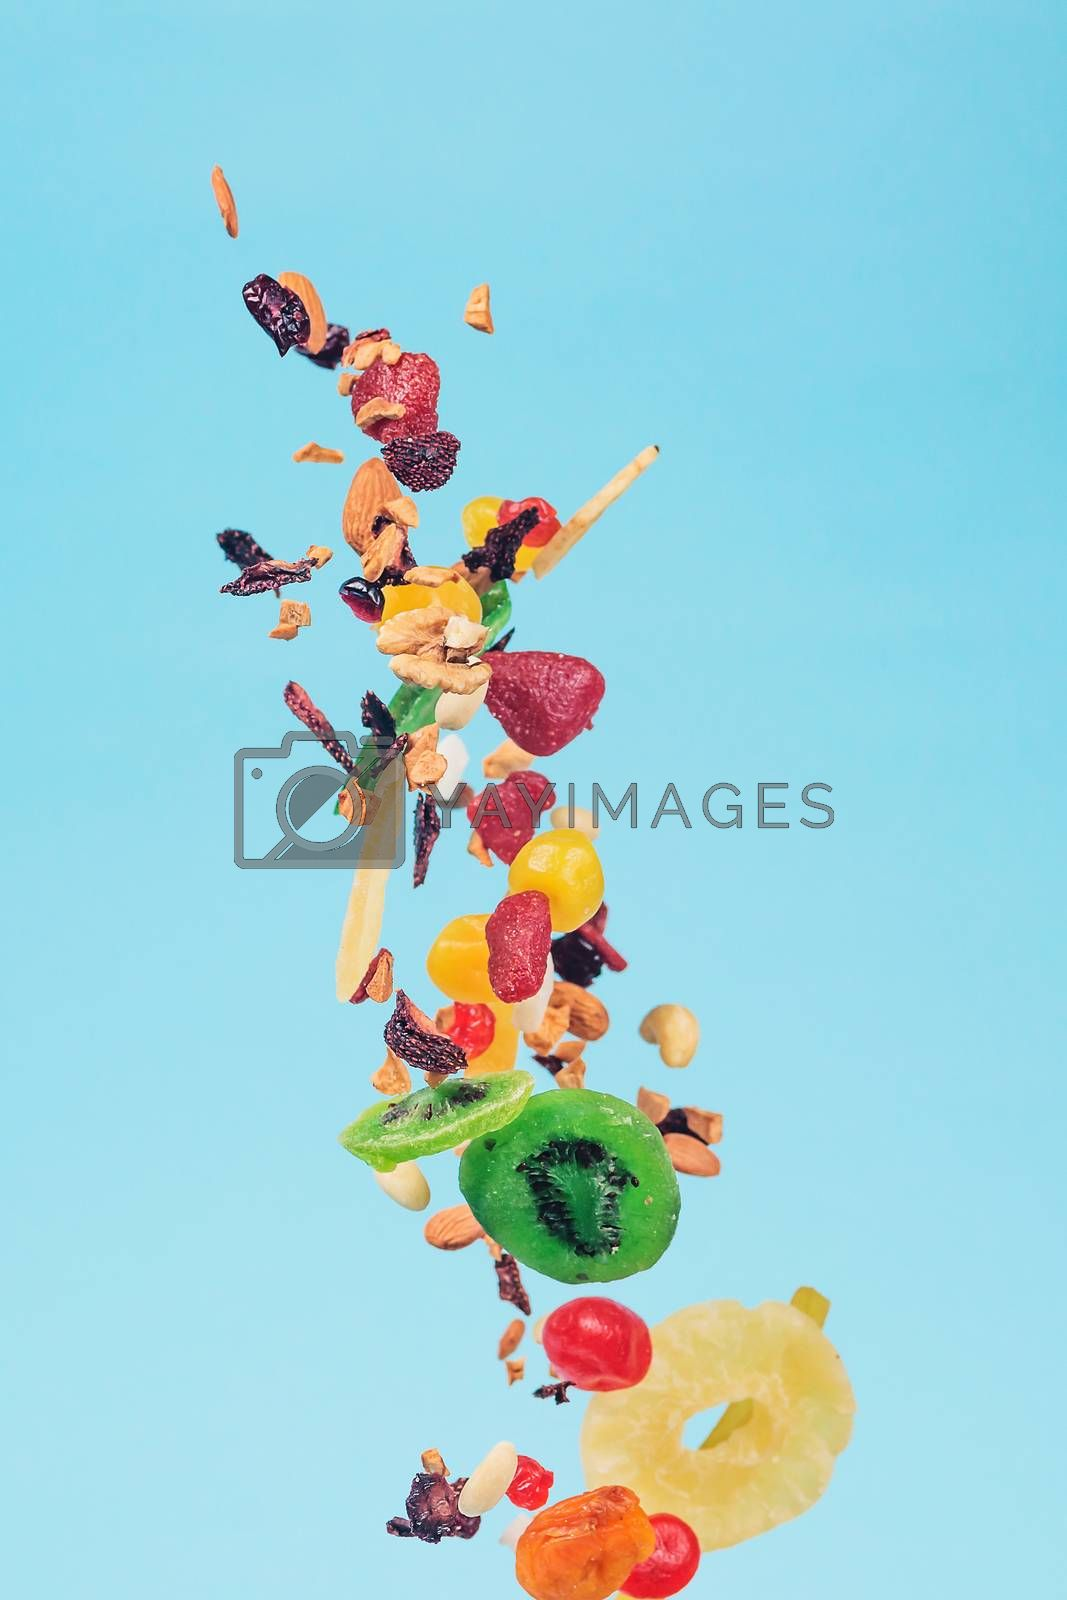 Dried and candied fruits and nuts flying on blue background. Stock photo of healty and nutrient food. Conceptual photo of vegan and vegetarian healty food.